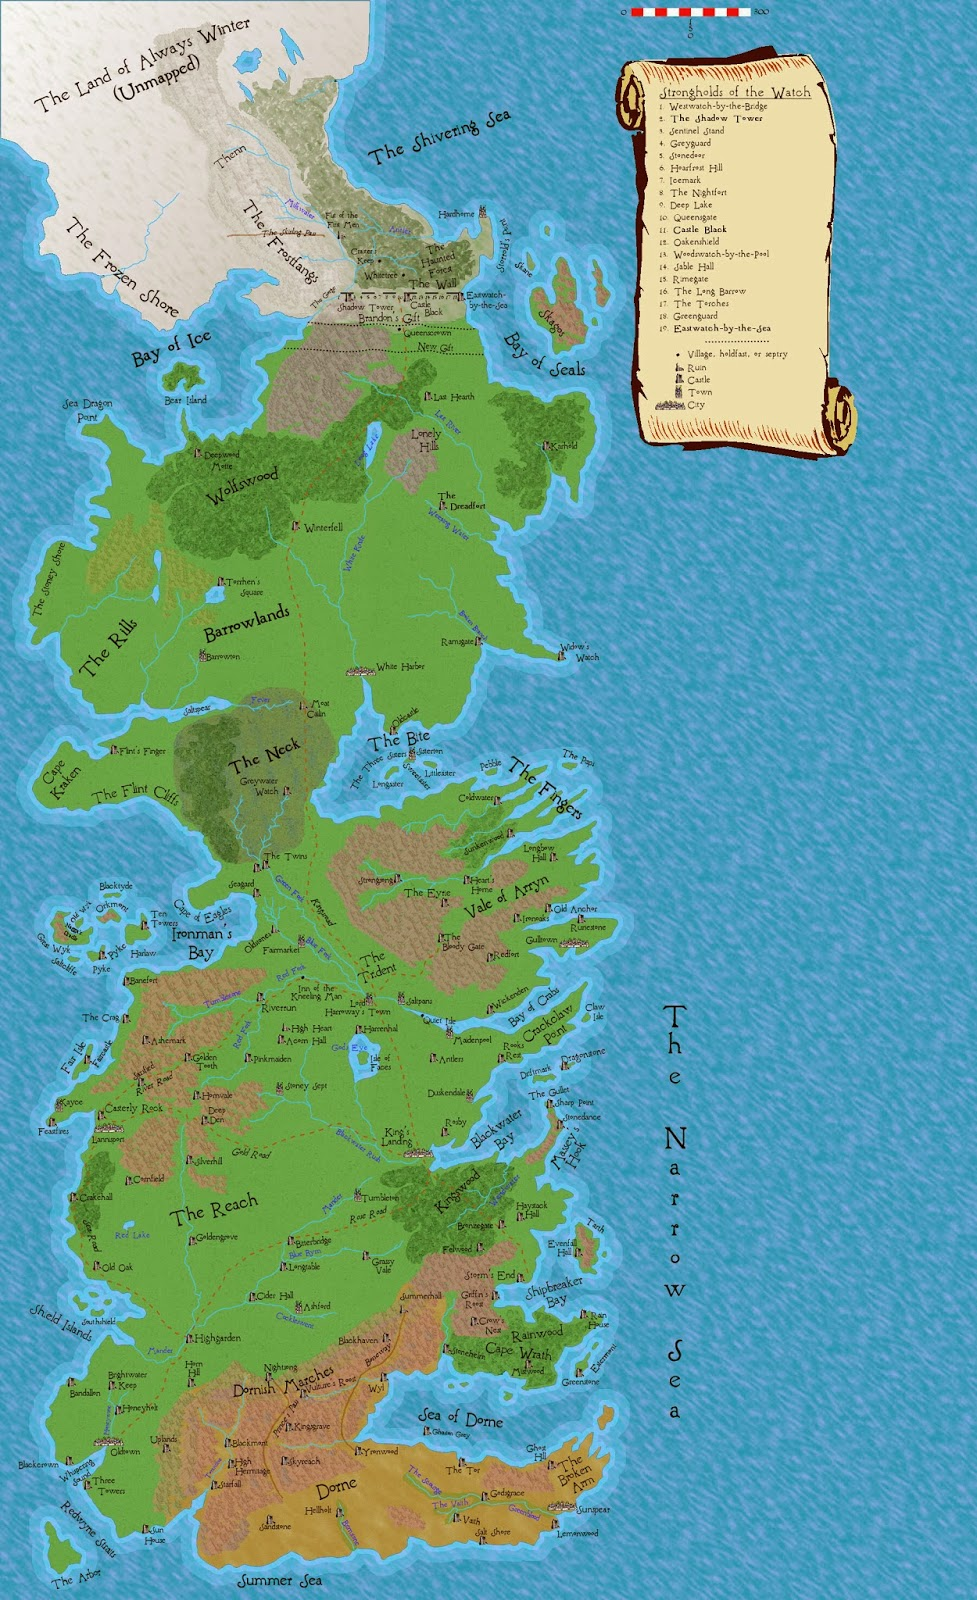 Nerdovore: More Maps of Westeros